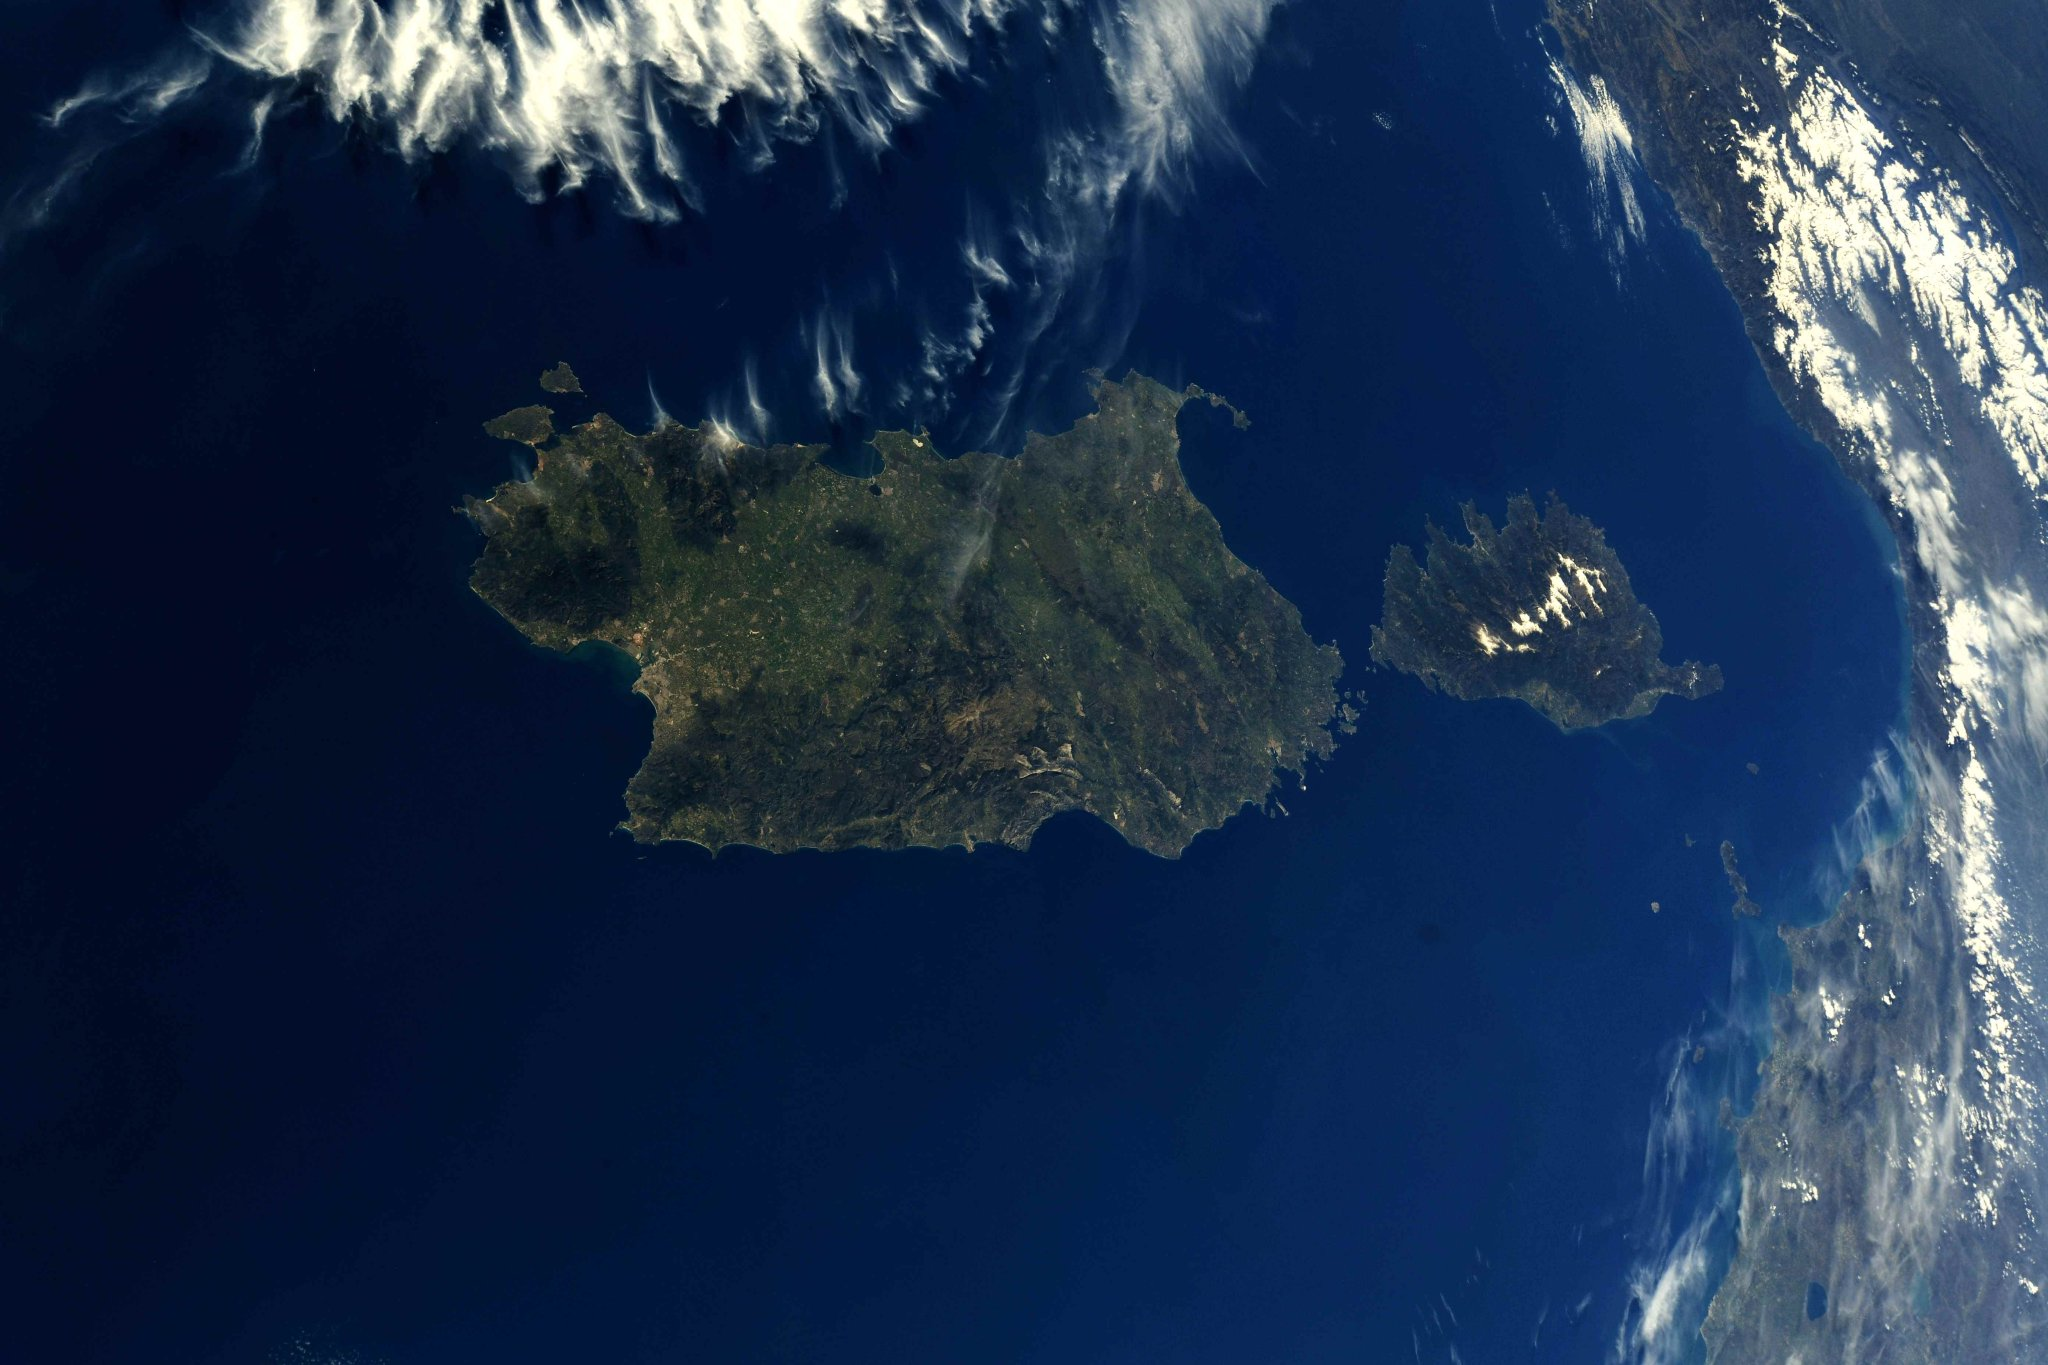 The islands of #Sardinia and #Corsica bathed in sunshine and the tranquil waters of the #Mediterranean. (Photo & Caption: Ricky Arnold / NASA)